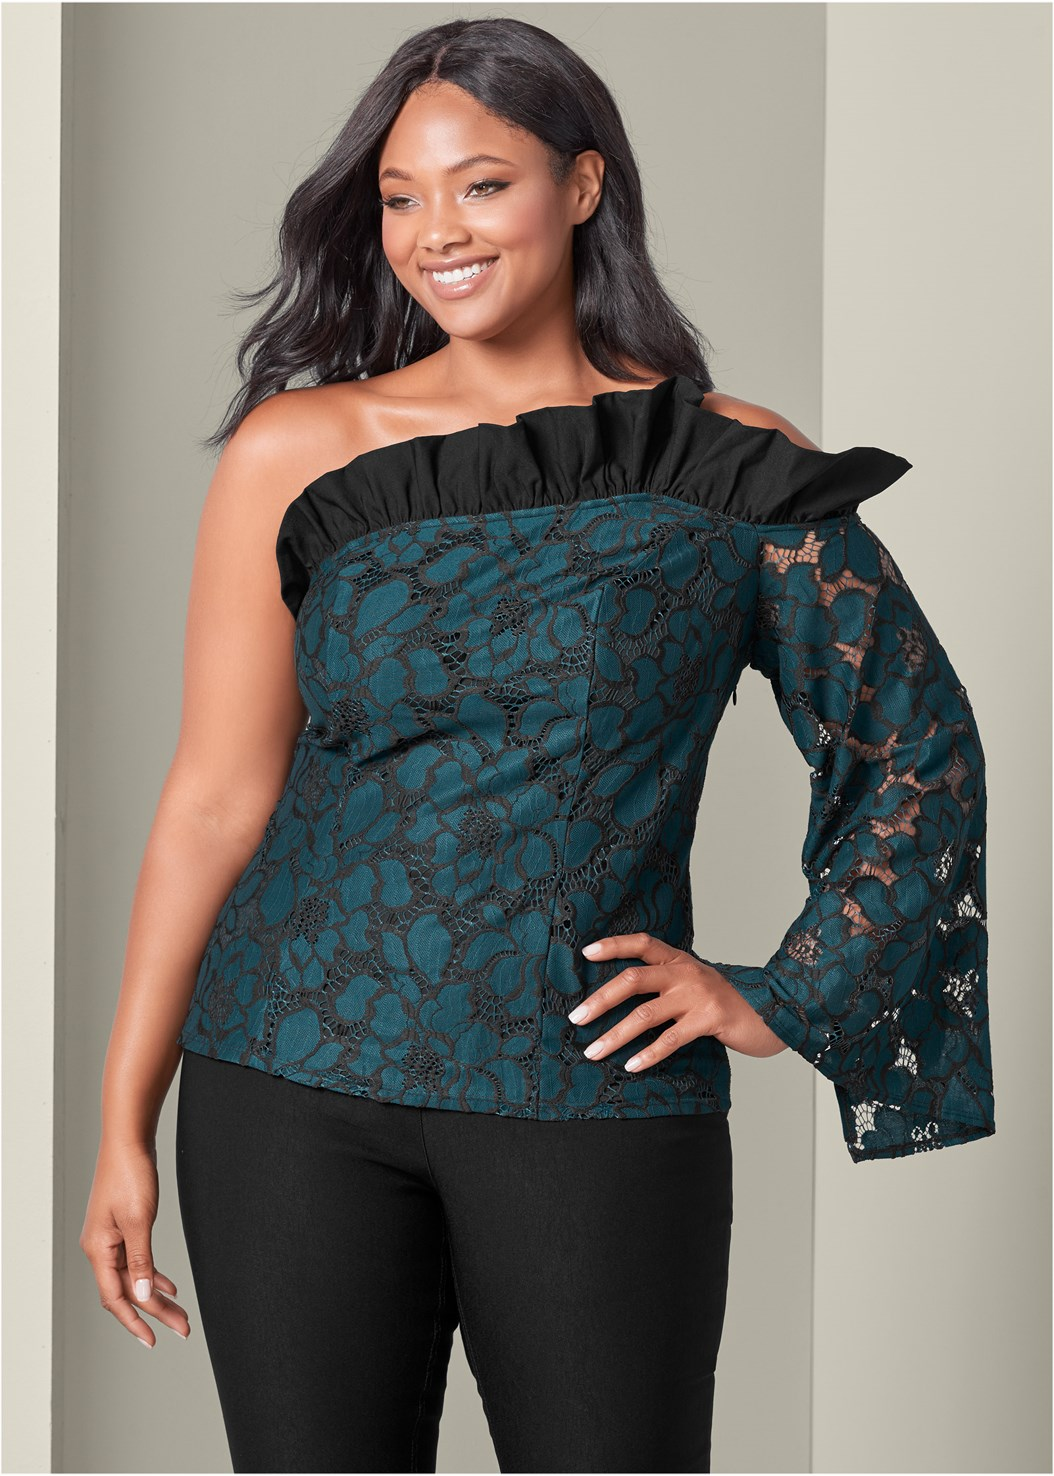 Cold Shoulder Ruffle Top,Mid Rise Slimming Stretch Jeggings,High Heel Strappy Sandals